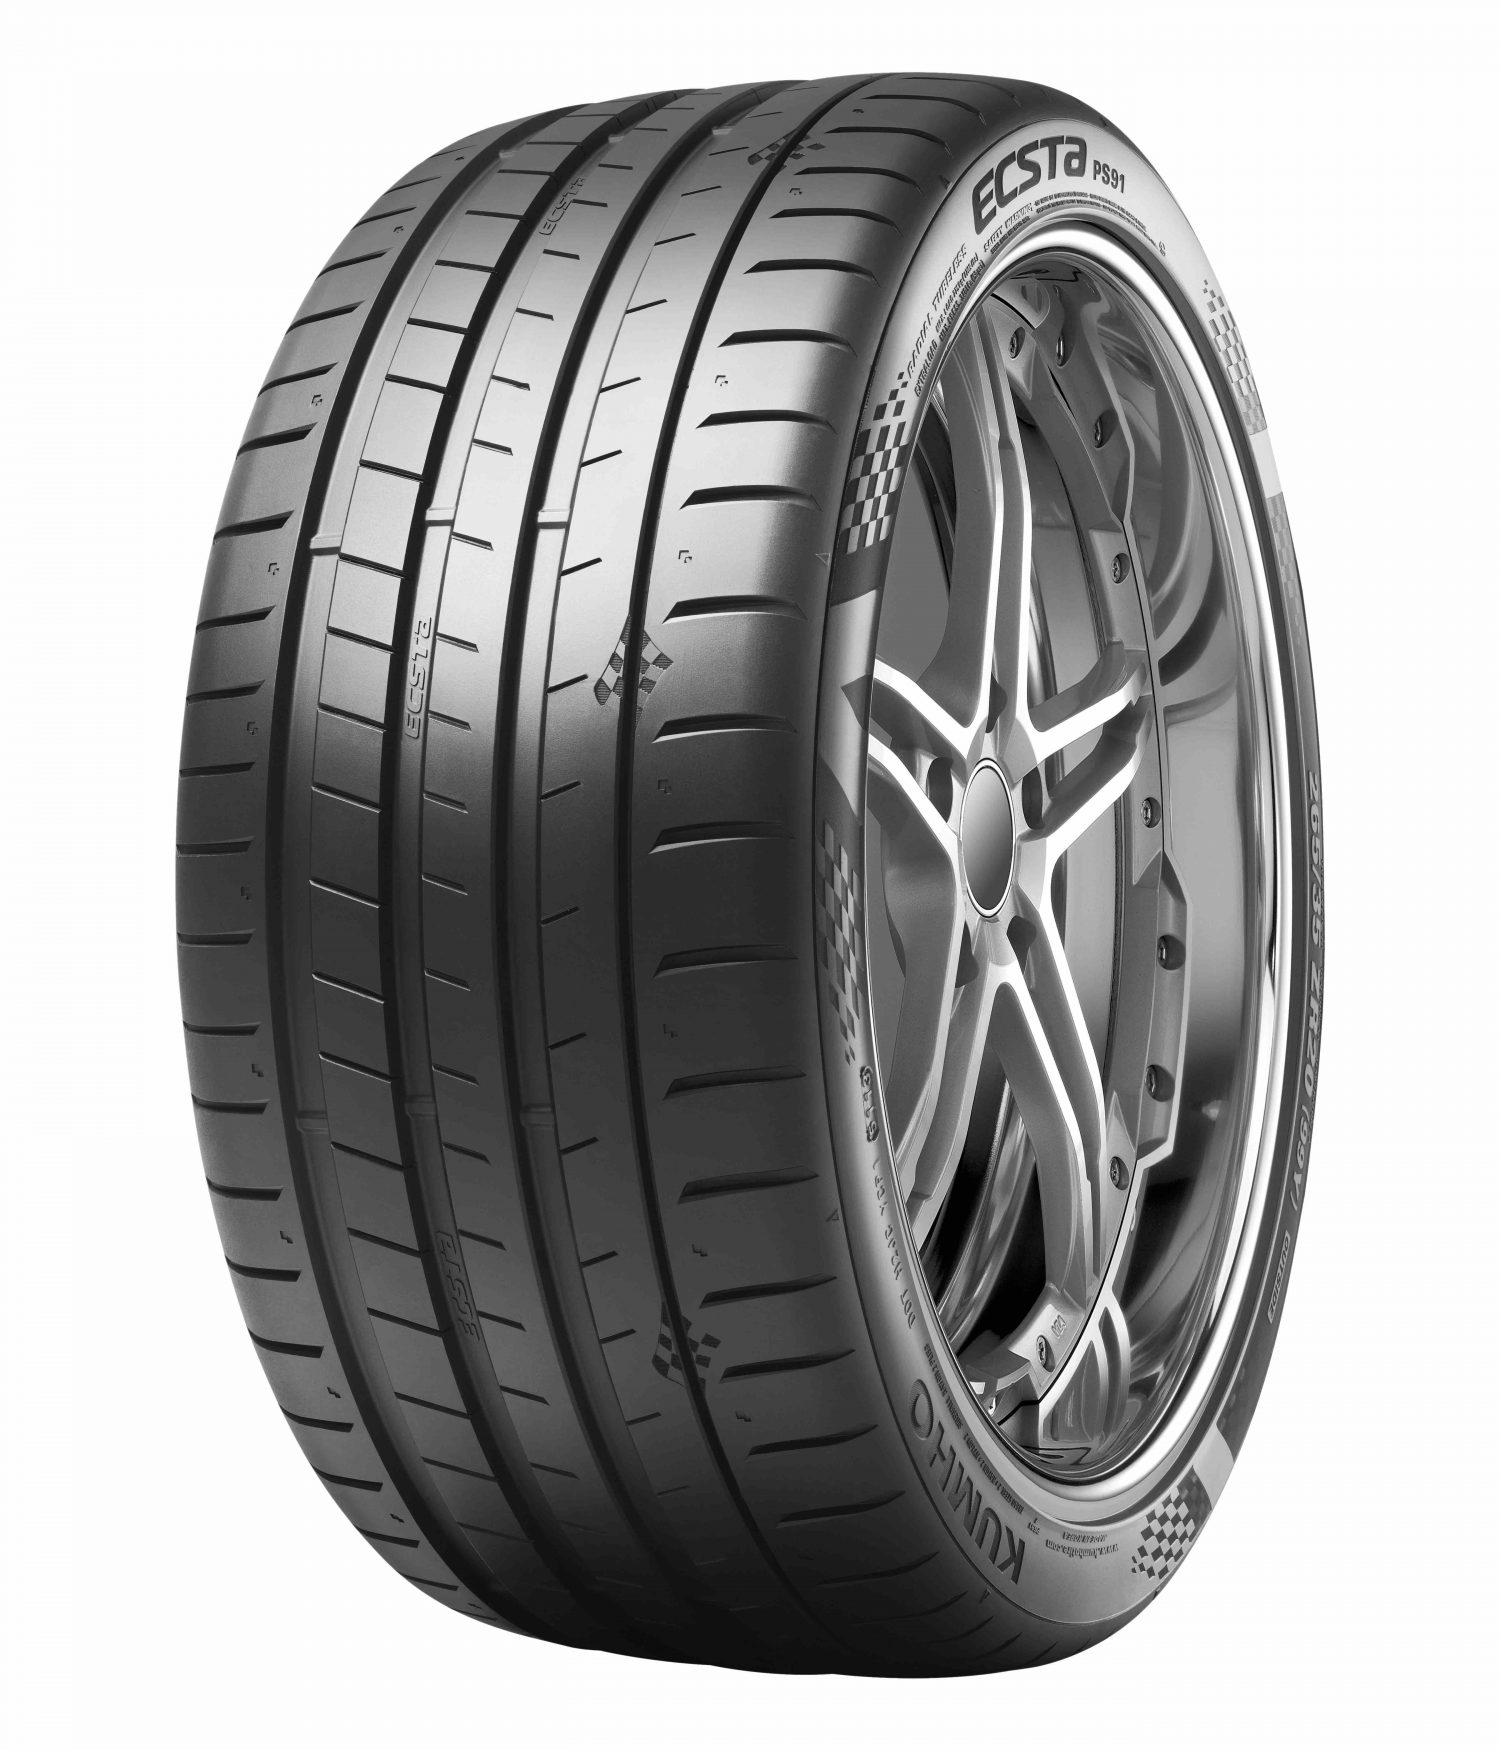 Consumer Reports Which tires improve fuel economy